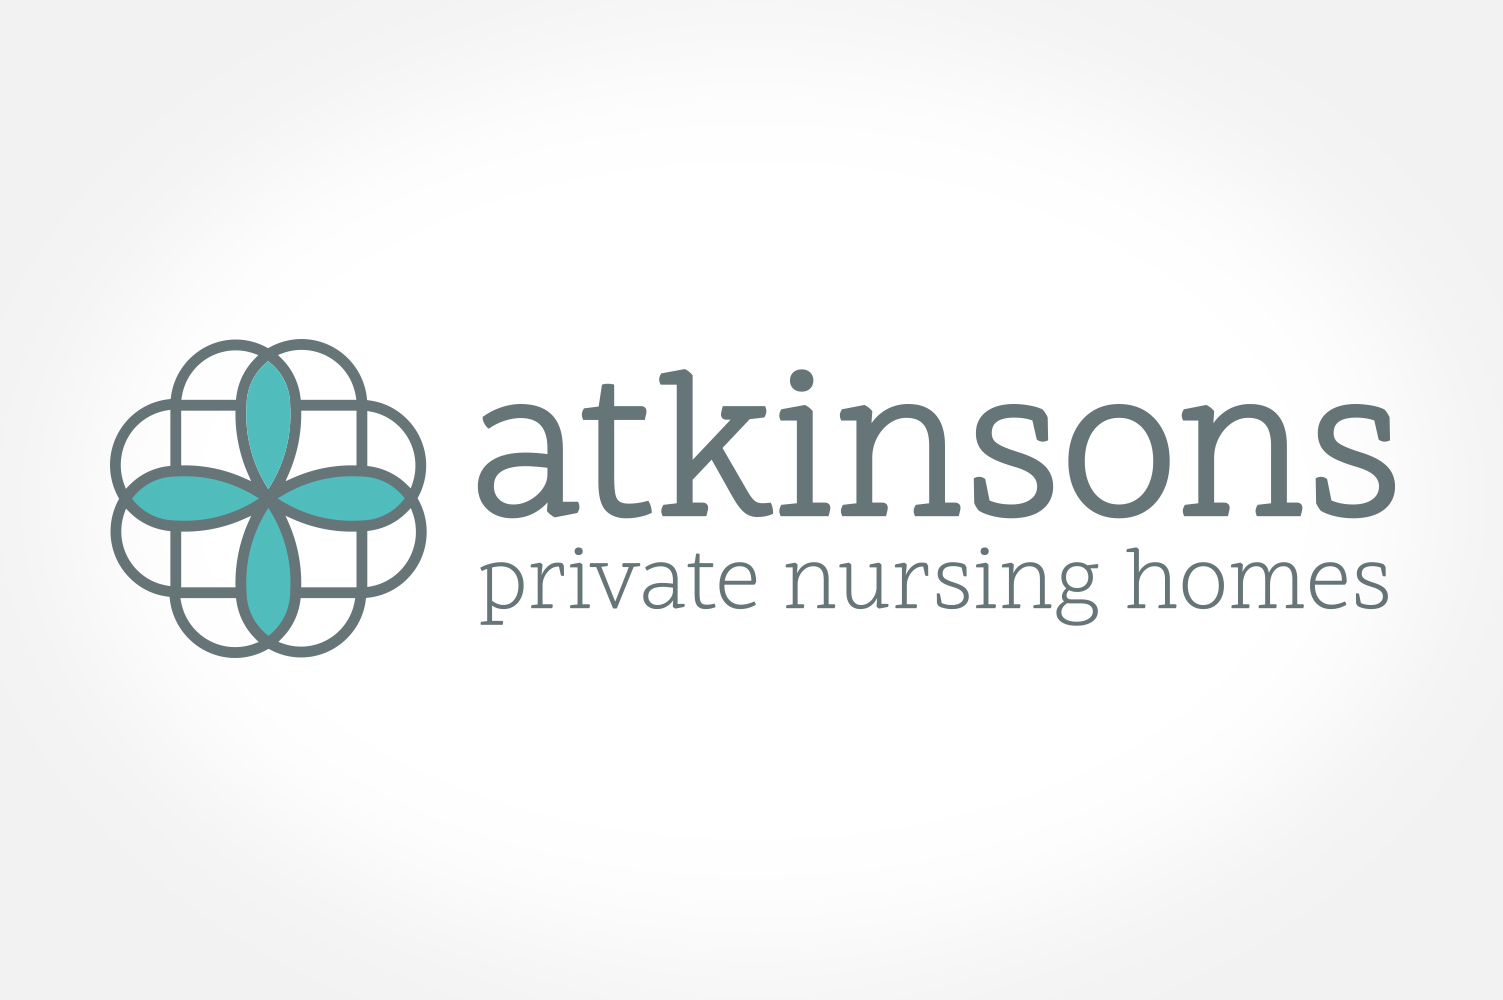 Atkinsons Private Nursing Homes